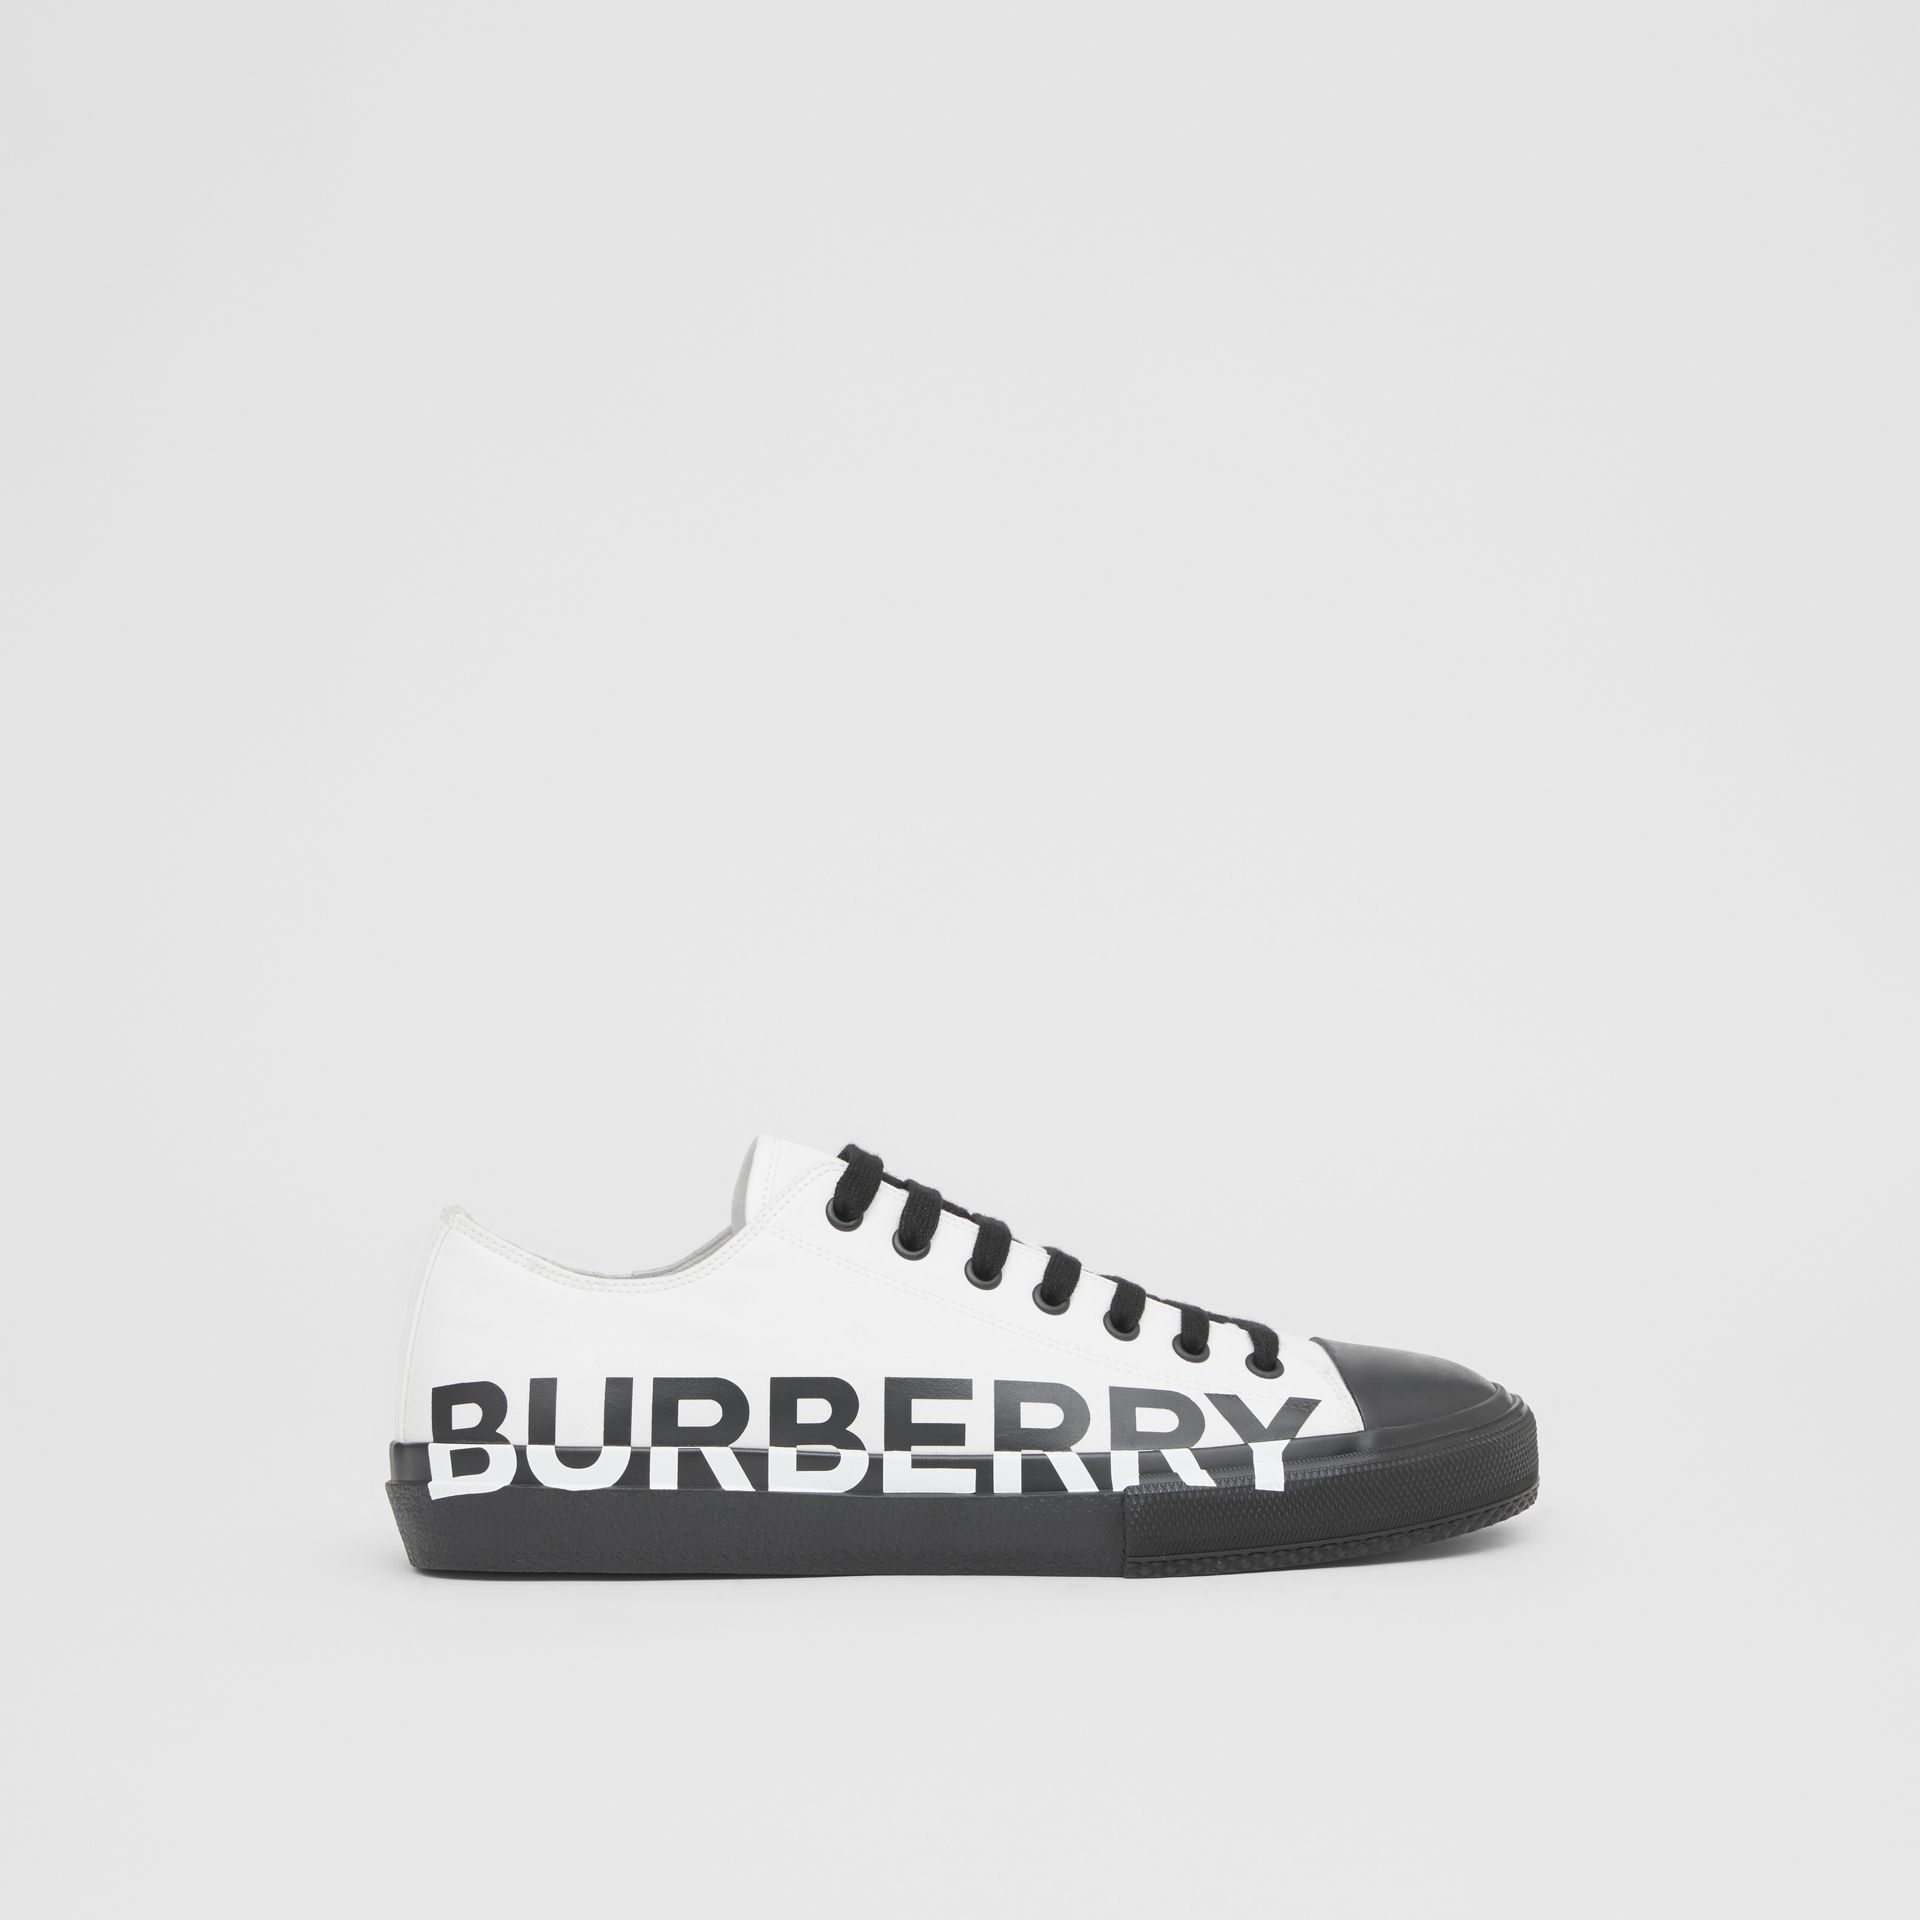 Sneakers en gabardine de coton bicolore avec logo (Blanc Optique/noir) - Homme | Burberry - photo de la galerie 5